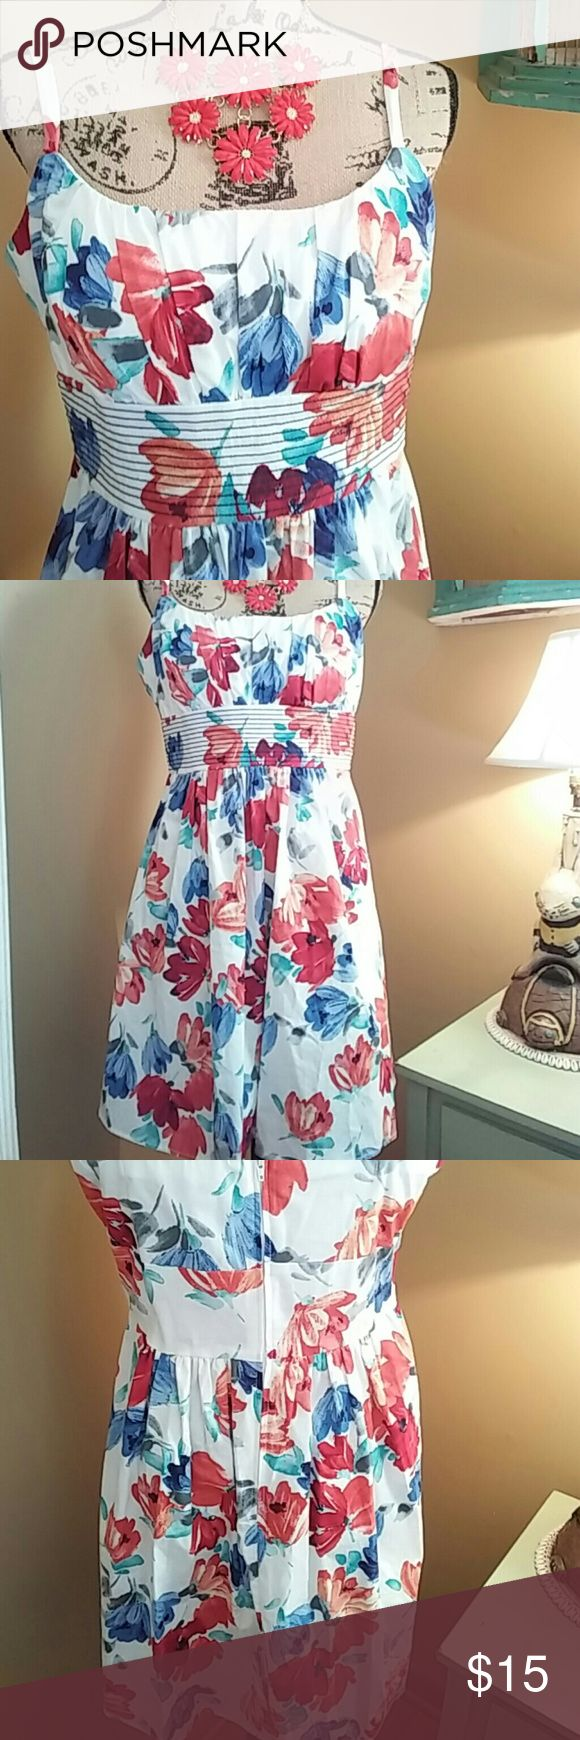 """Floral Dress Gorgeous floral dress by B. Smart. All over floral design in various shades of blues, reds and orange with pops of gray on a white backdrop. Navy stitching runs underneath bust. Adjustable straps. Semi padded cups. Back zipper with elastic around top of back. 18"""" pit to pit. 34"""" long. Waist is 19"""". Cotton/spandex. Excellent condition B. Smart Dresses Midi"""